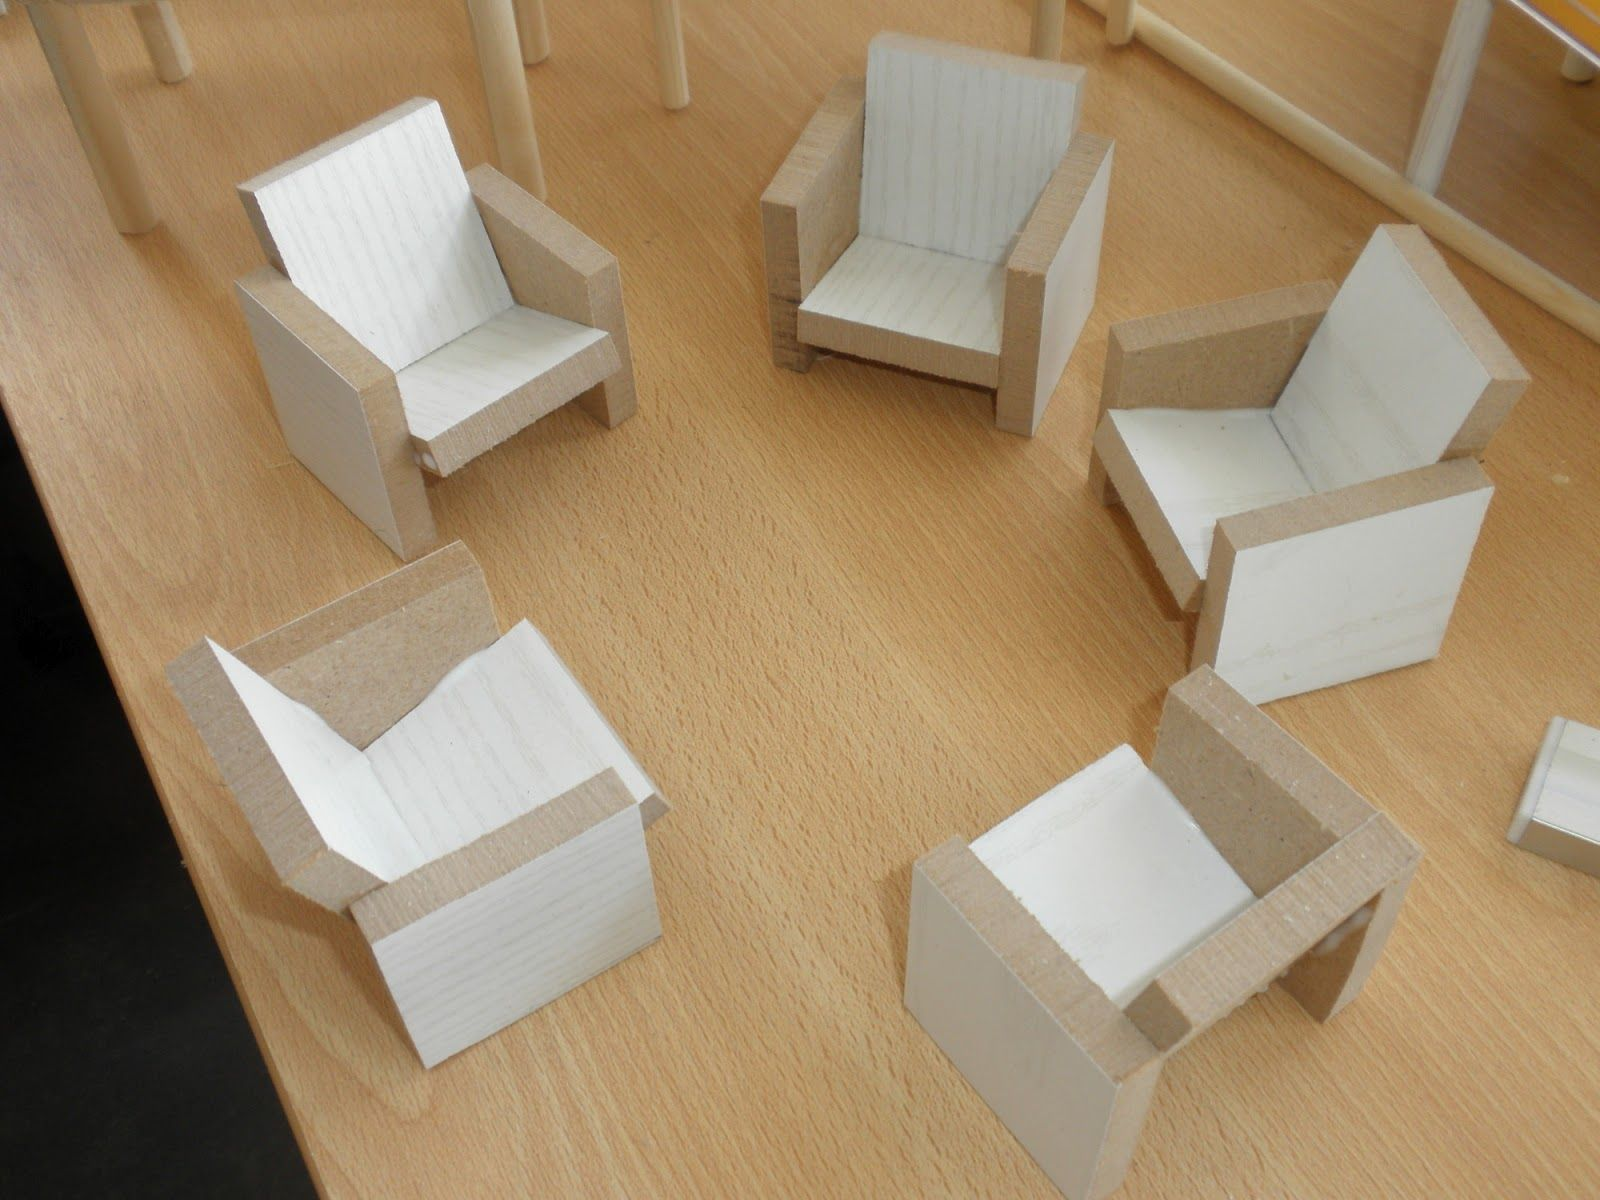 How To Make Simple Chunky Dollhouse Furniture From Squares